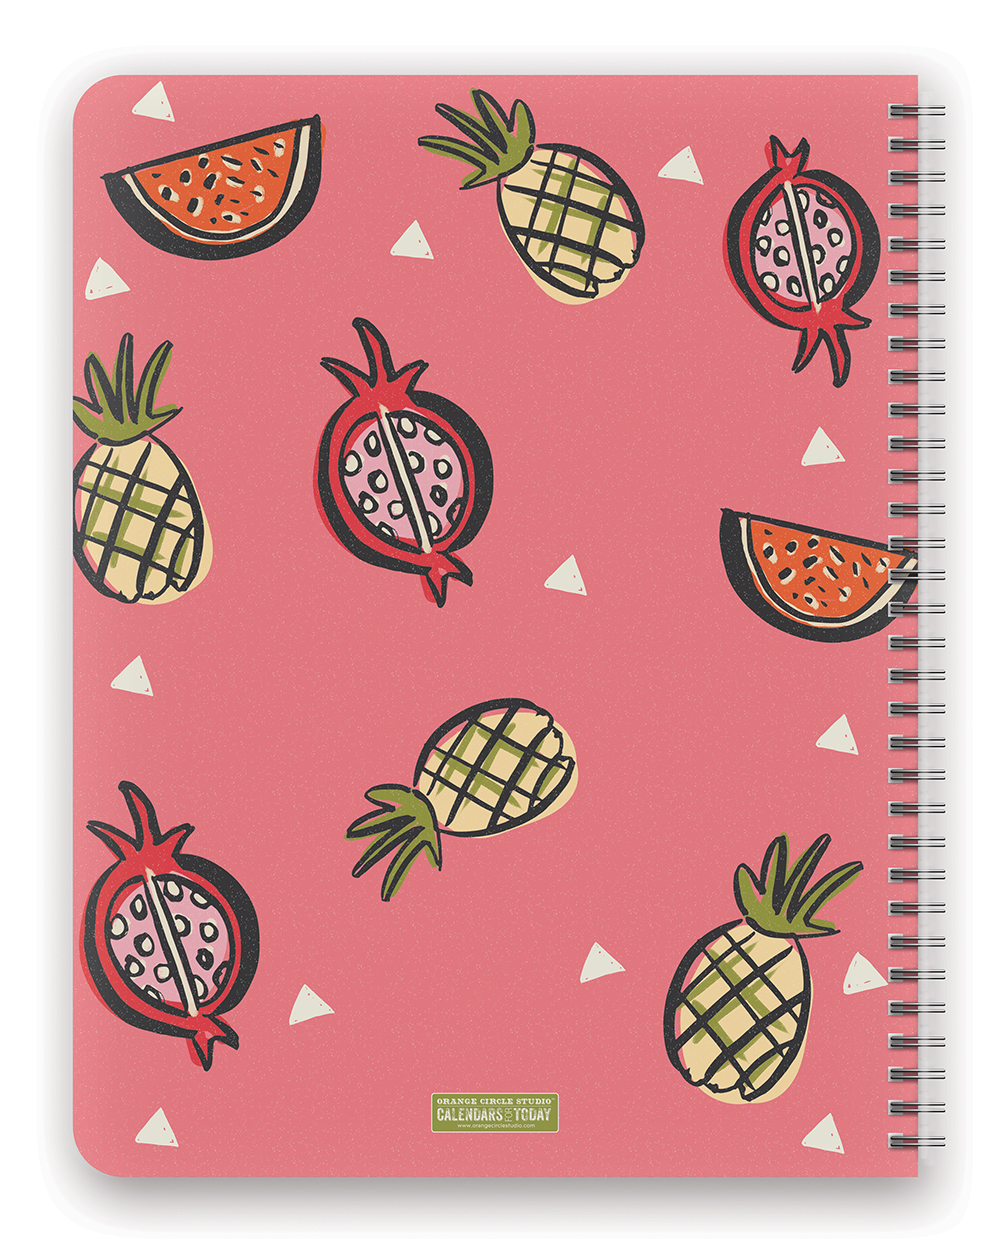 Be Awesome Today Extra Large Flexi Planner 2018 by Orange Circle Studio back 9781682582503